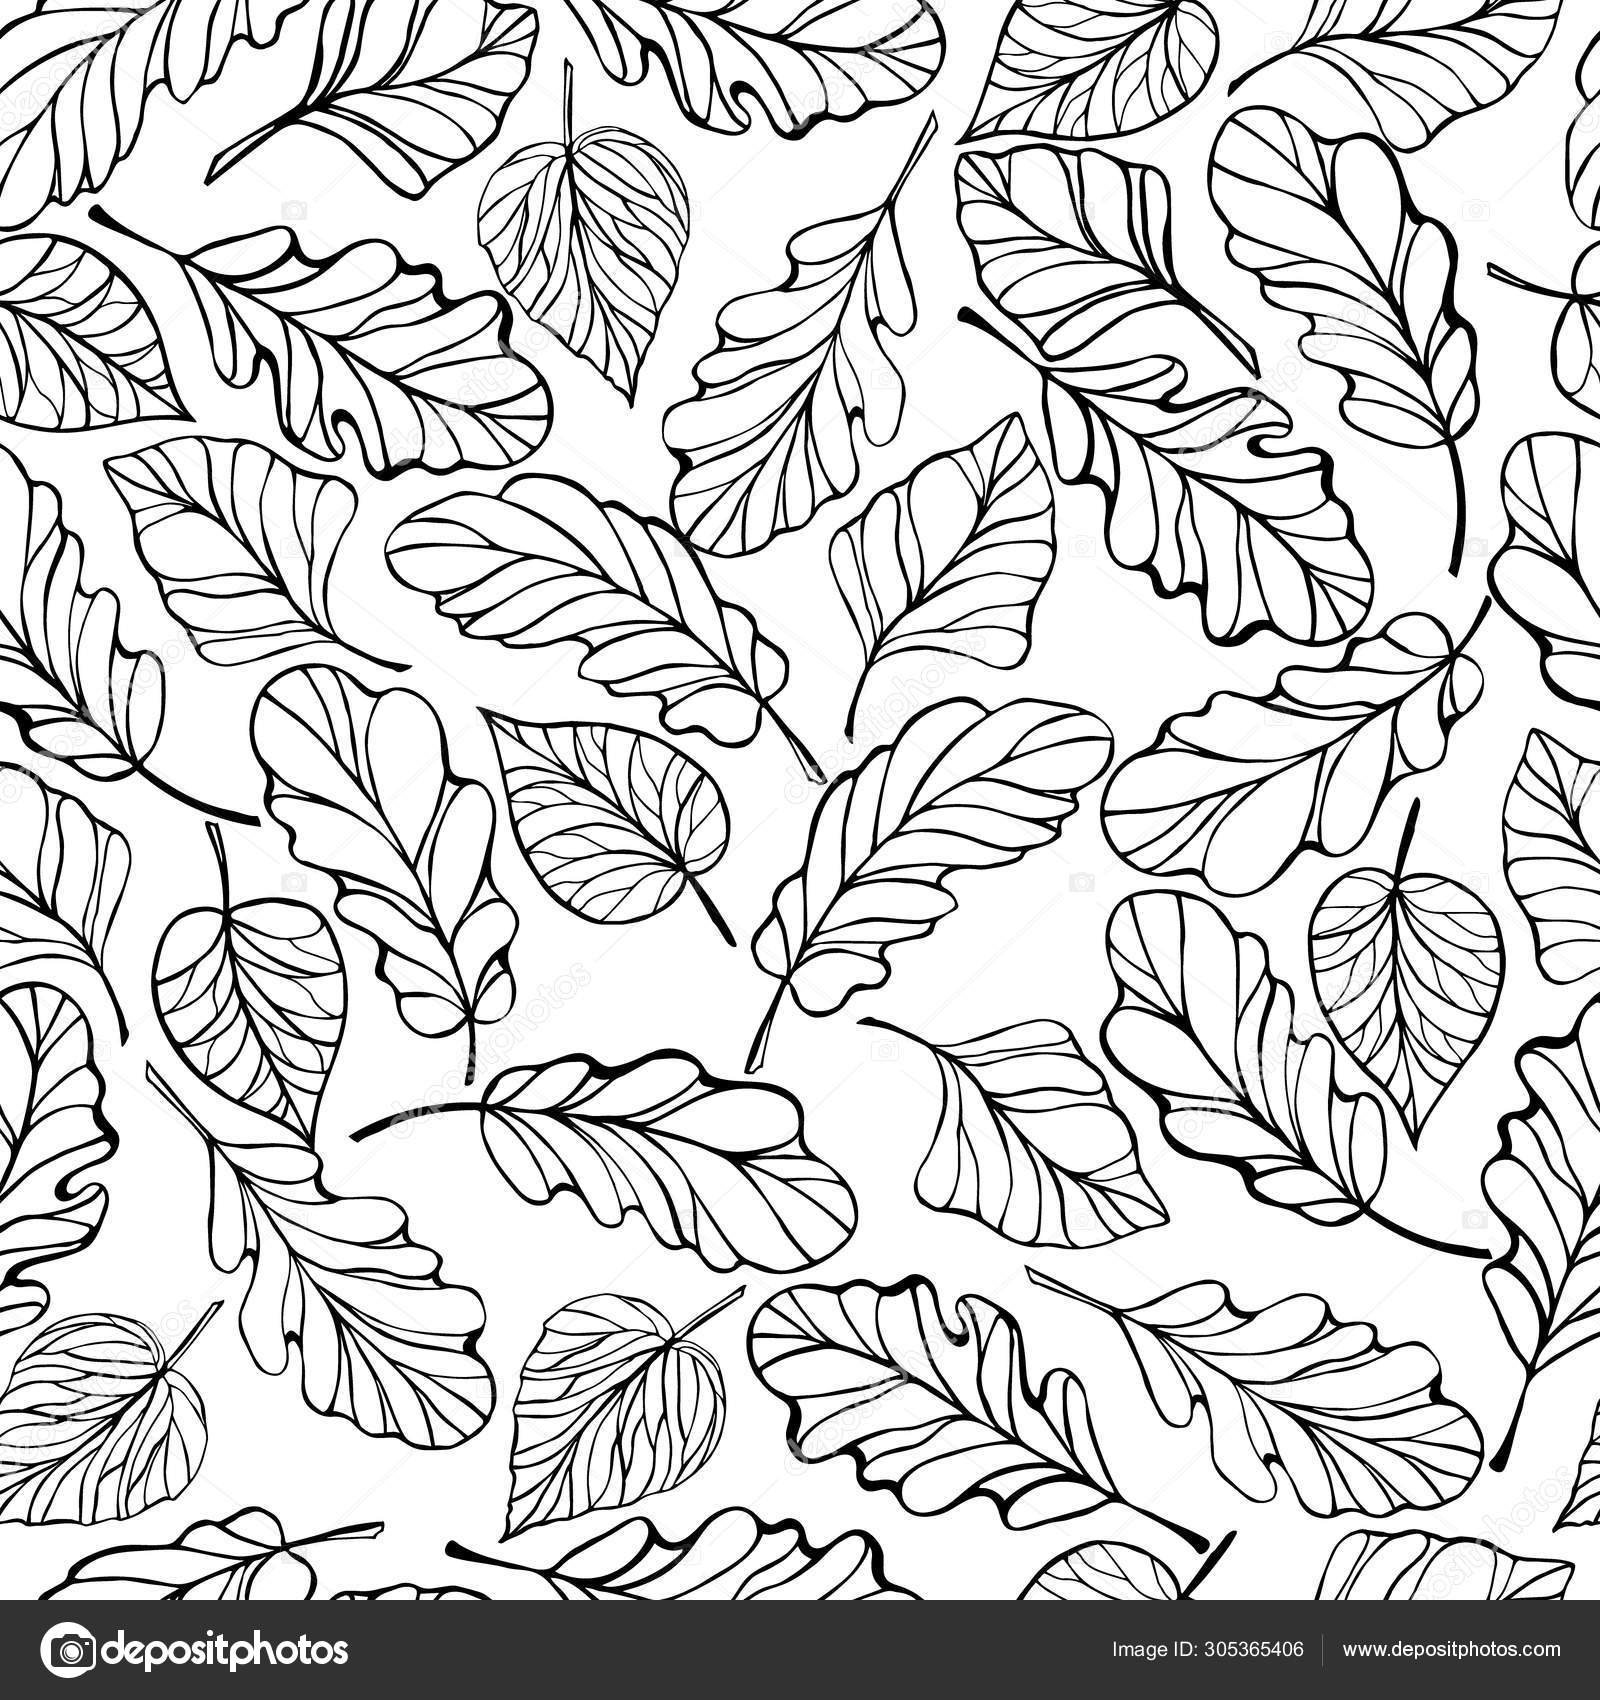 Seamless Pattern Foliage Hand Draw Leaves Decorative Background Leaf Stock Vector C Natwil 305365406